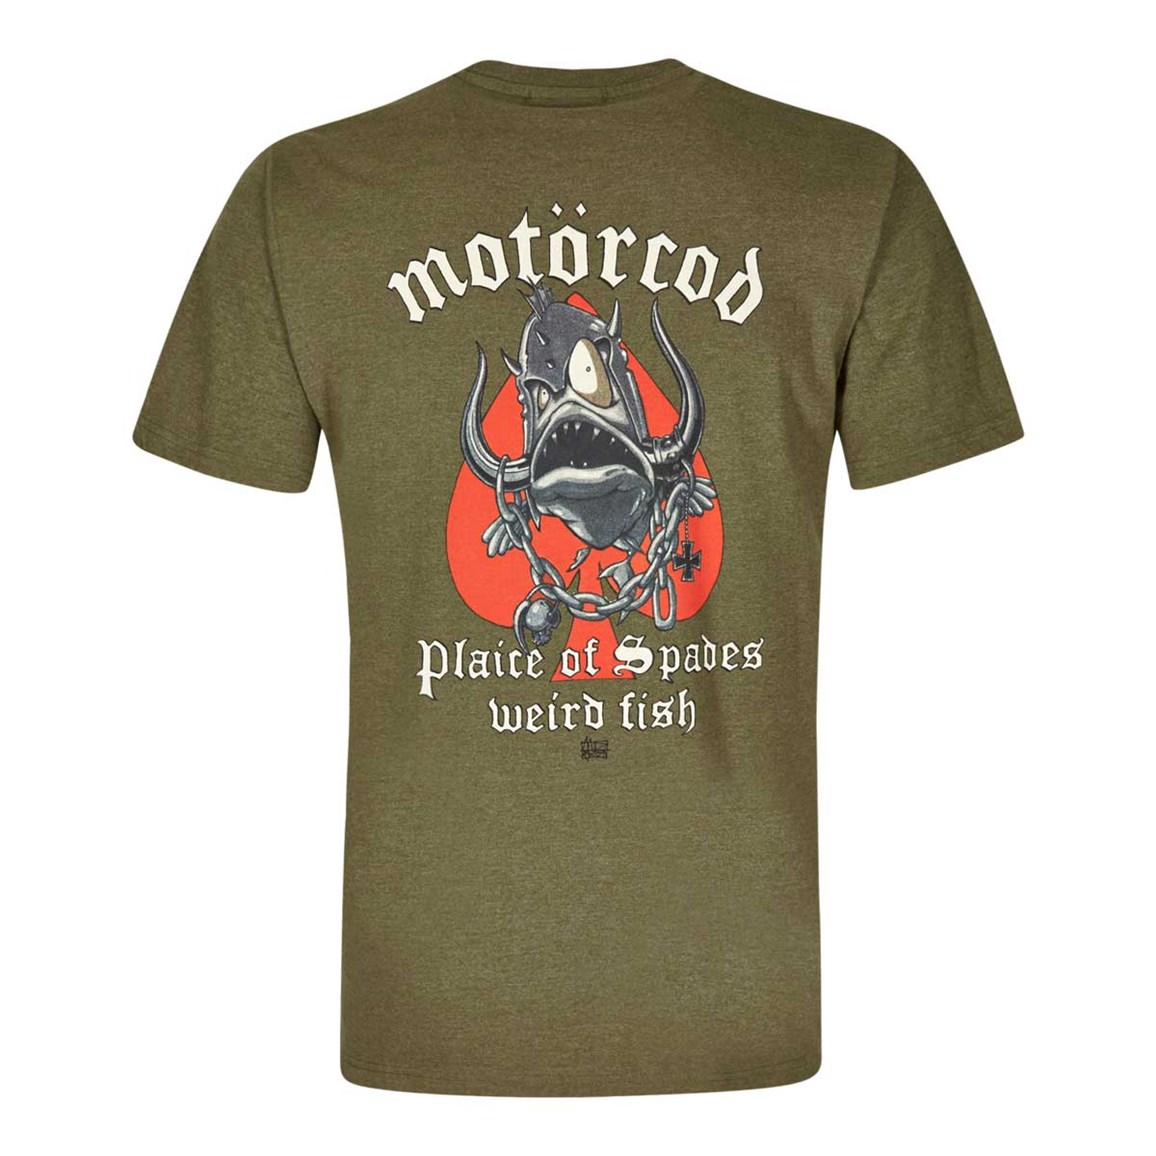 Weird Fish Motorcod Printed Artist T-Shirt Military Olive